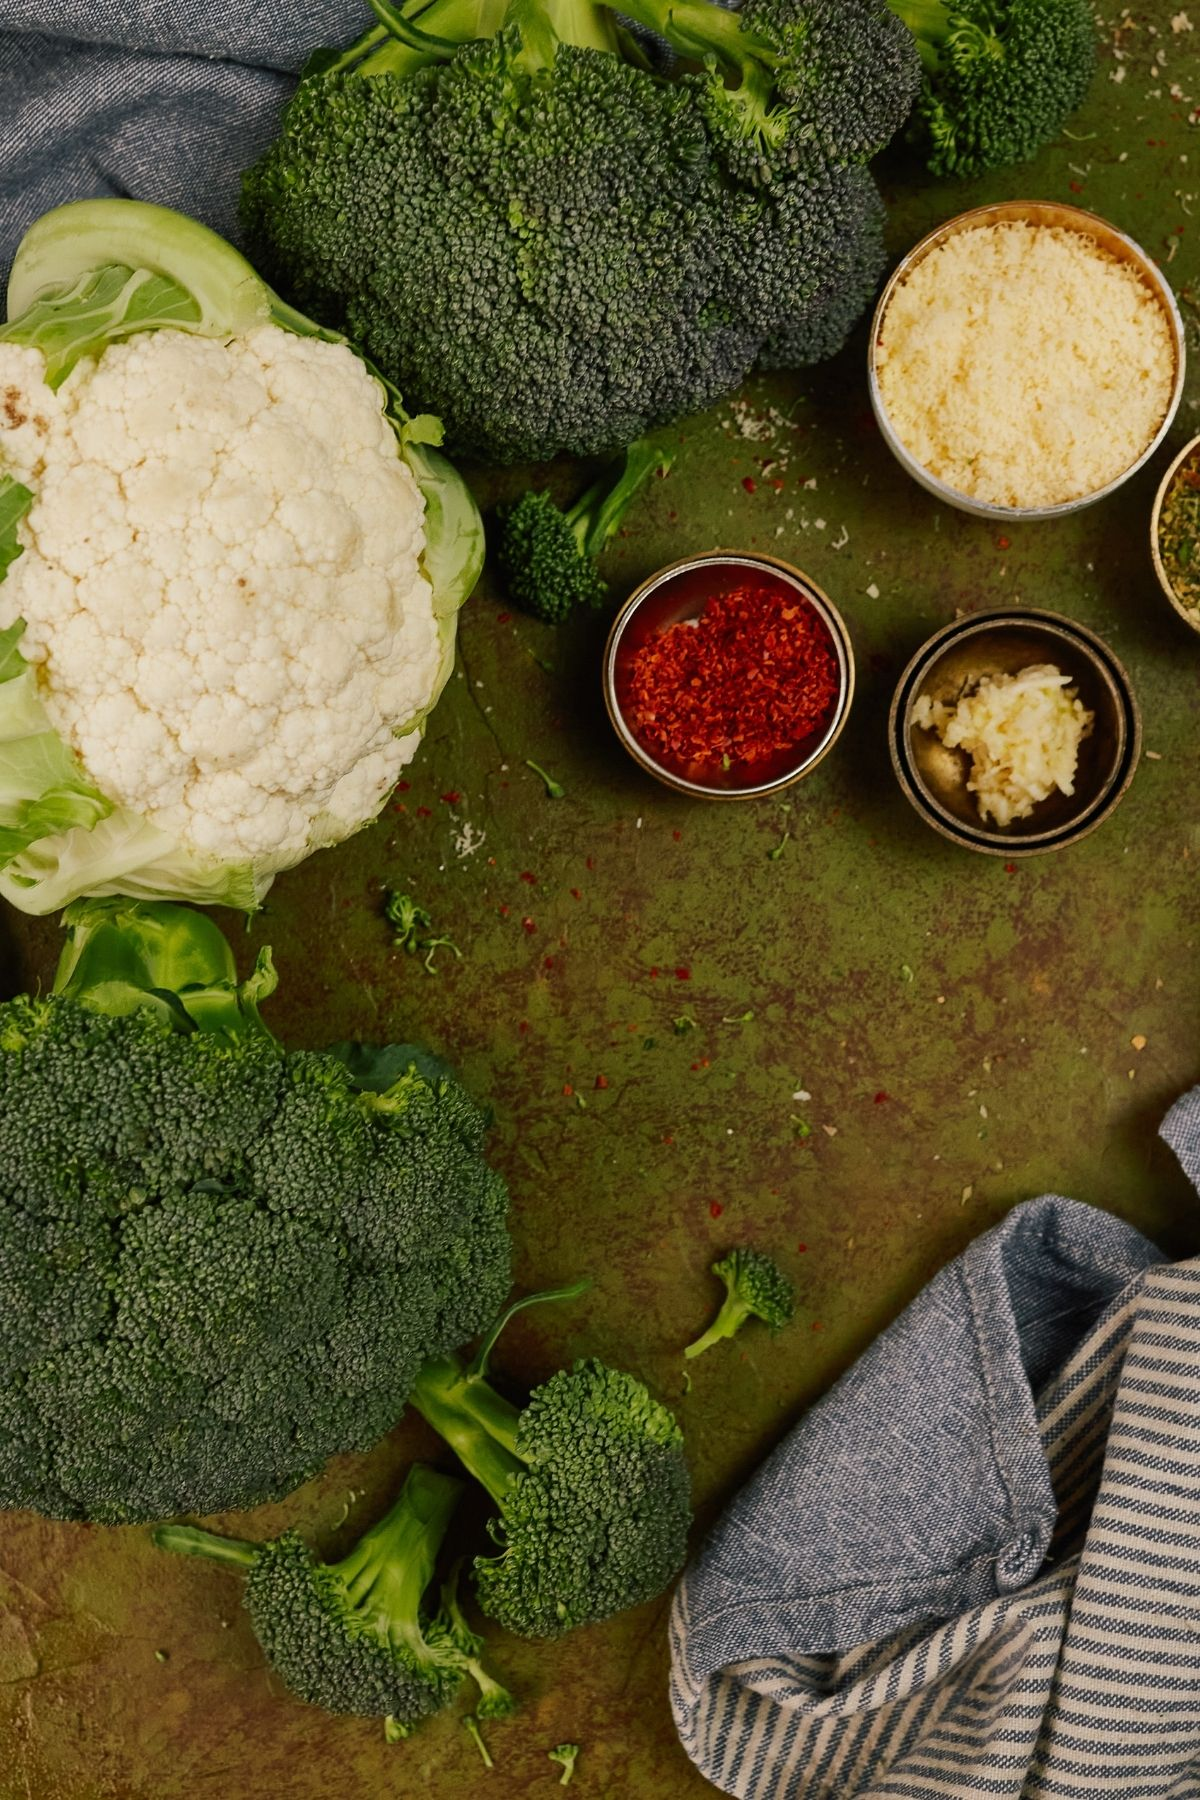 cauliflower and broccoli with bowls of spices on green table by gray napkin